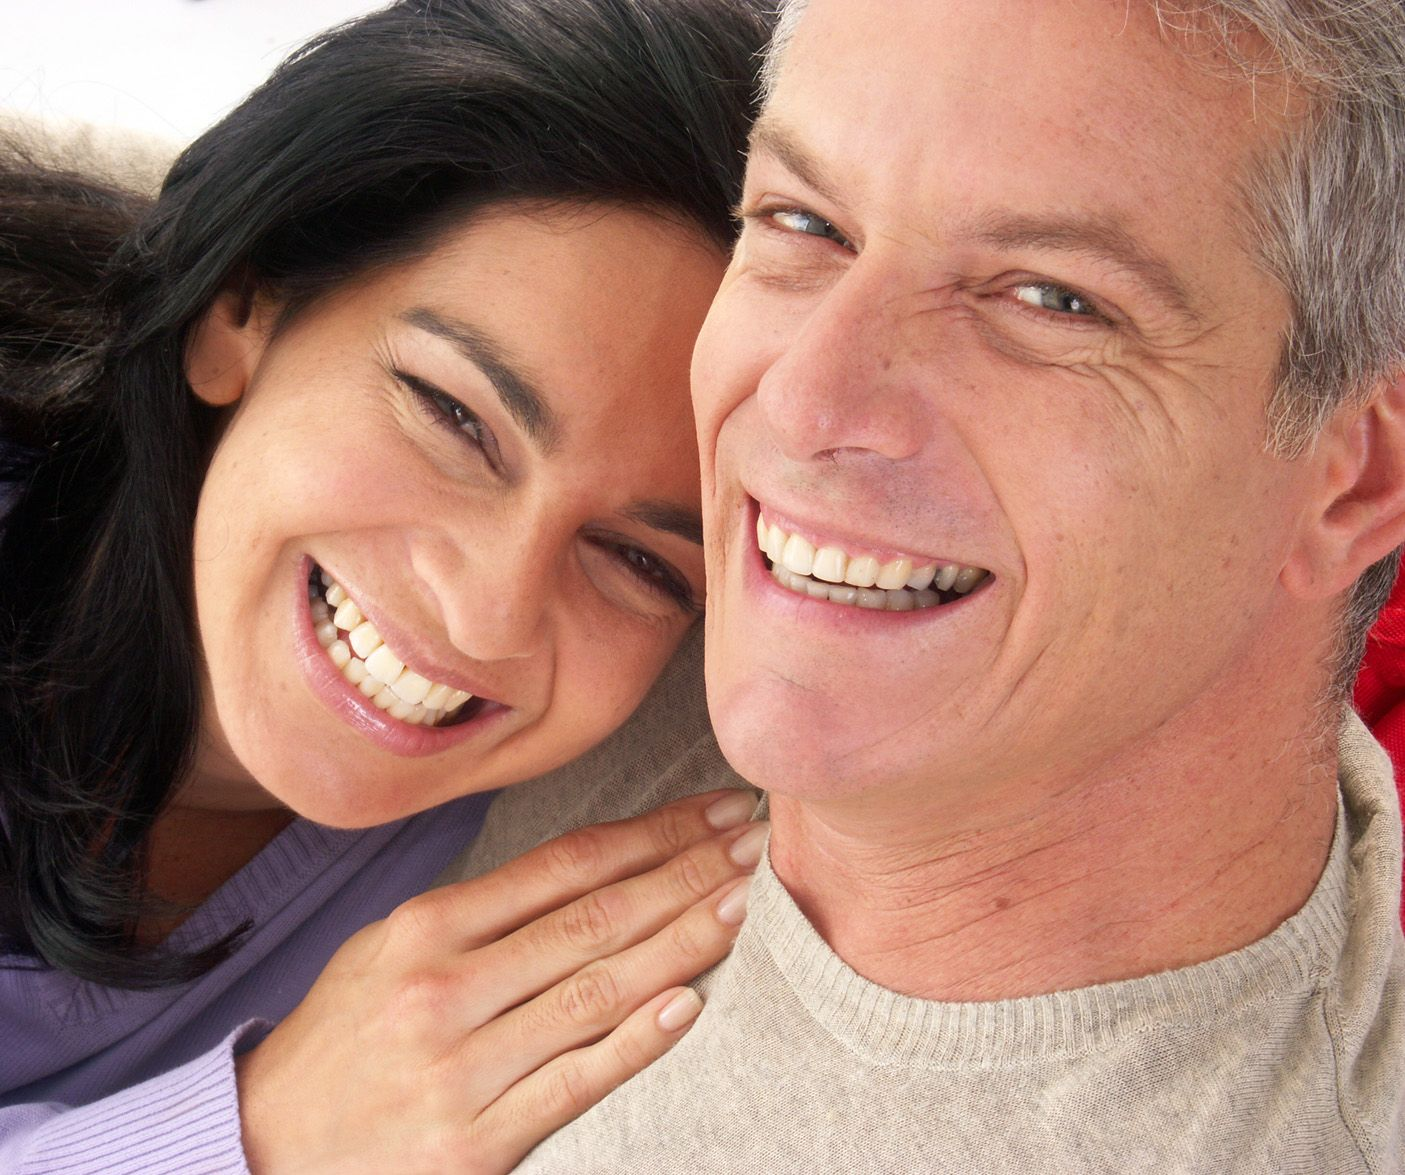 Tooth Extraction - couple smiling